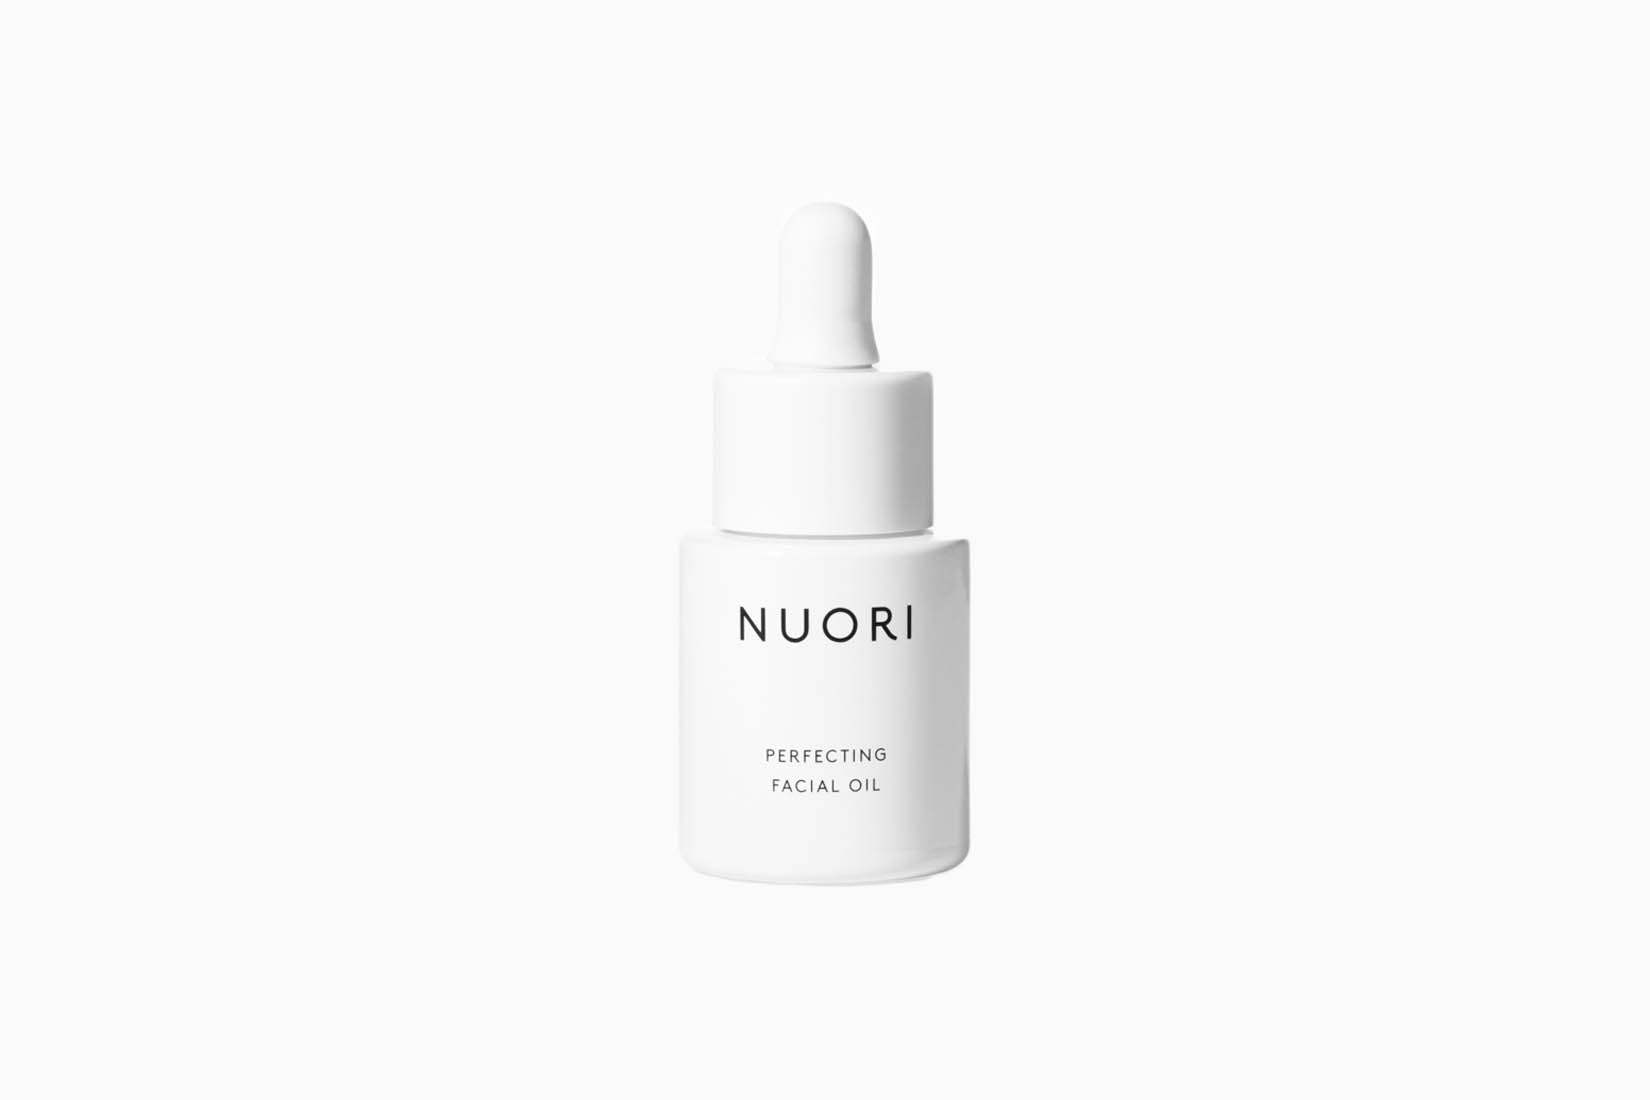 Best Face Oils Nuori Review - Luxe Digital